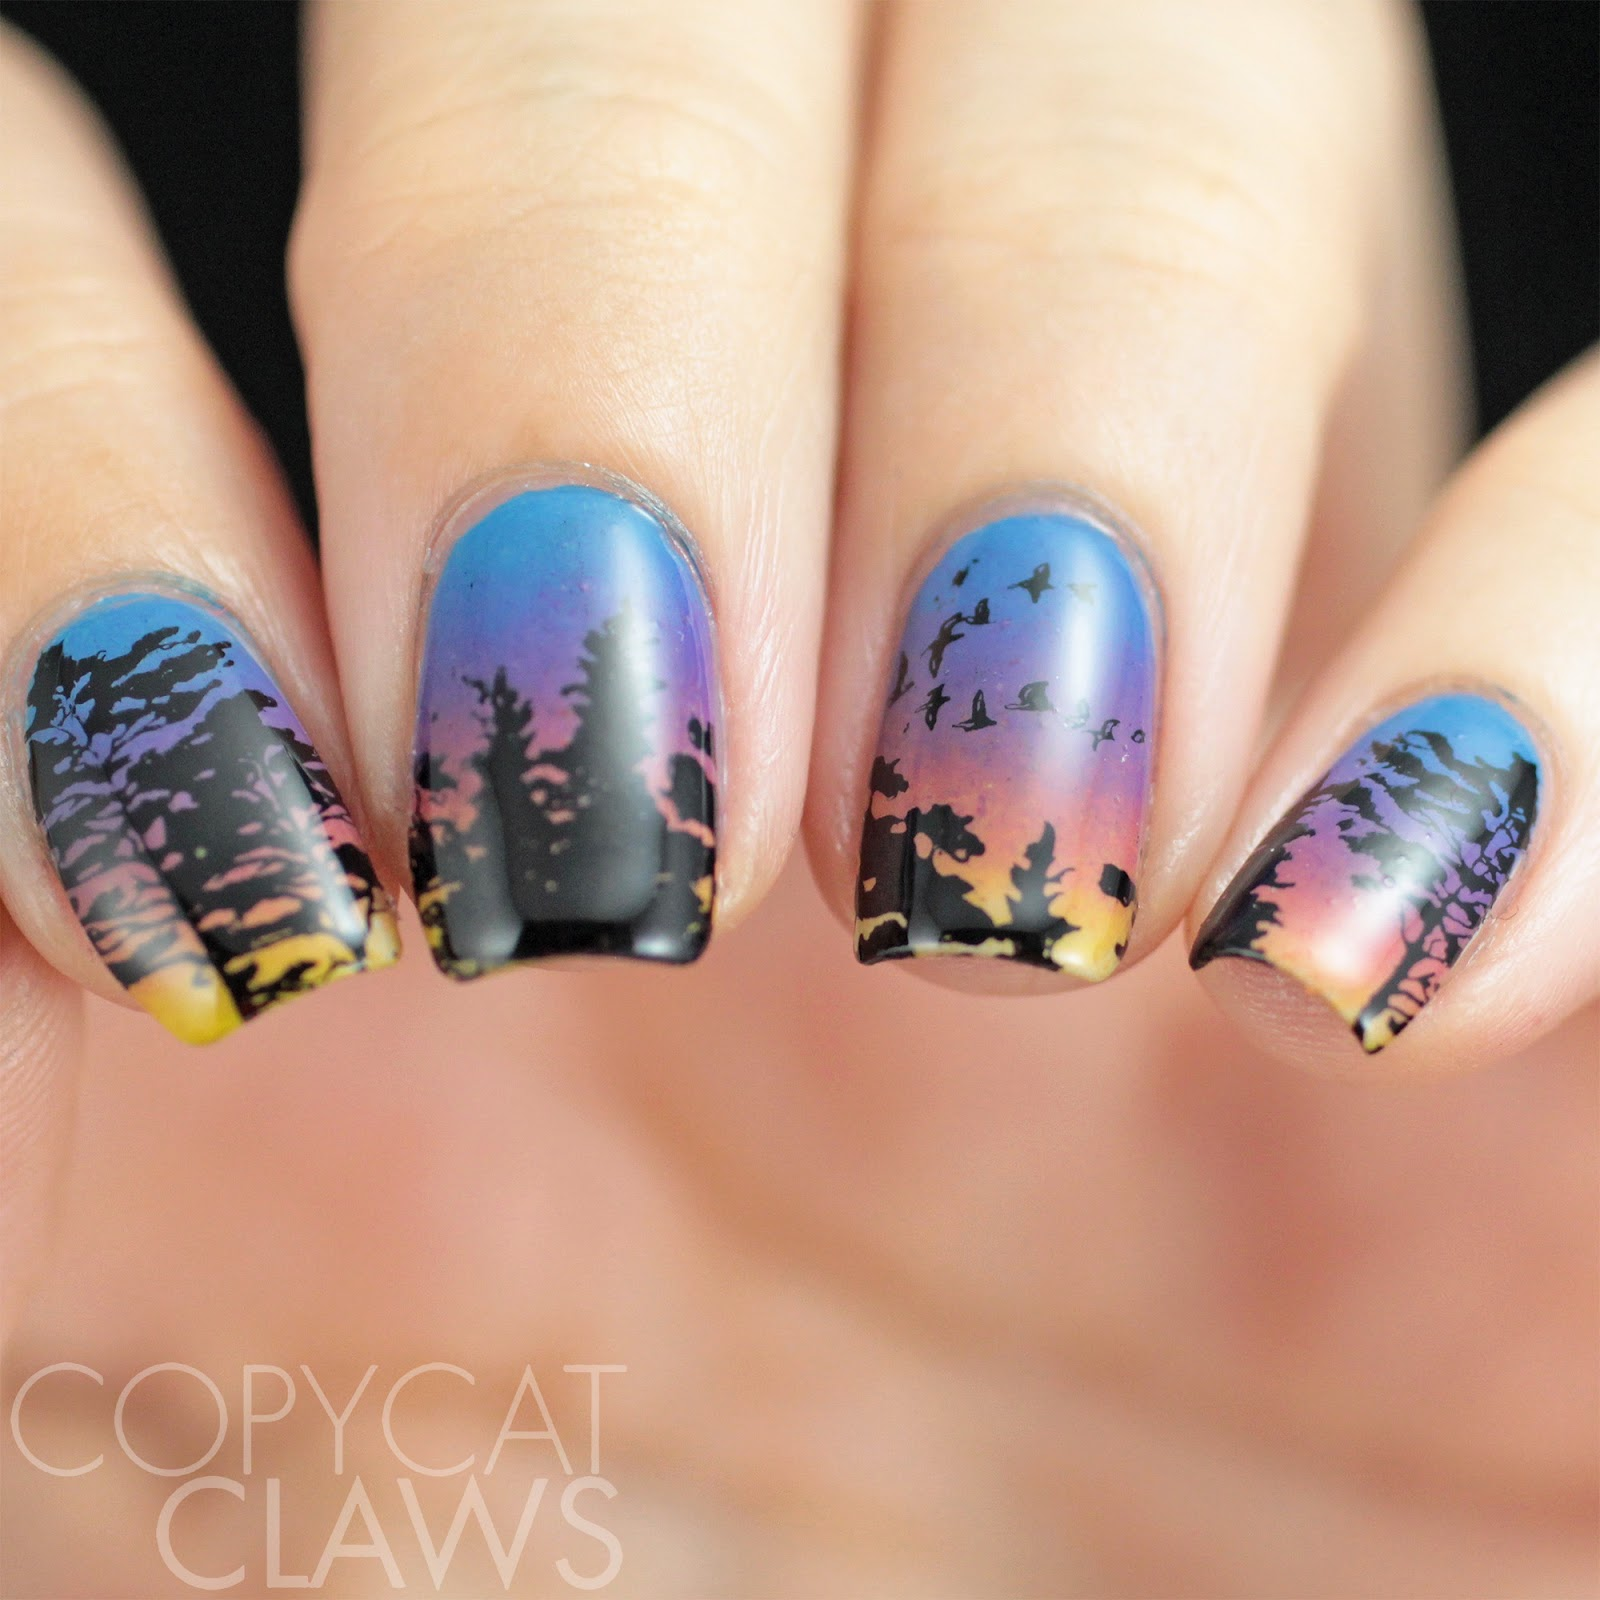 Copycat claws 26 great nail art ideas end of summer on the plus side they inspired todays nails that evening also had a beautiful sunset as though the sky knew i needed to be cheered up a bit prinsesfo Choice Image